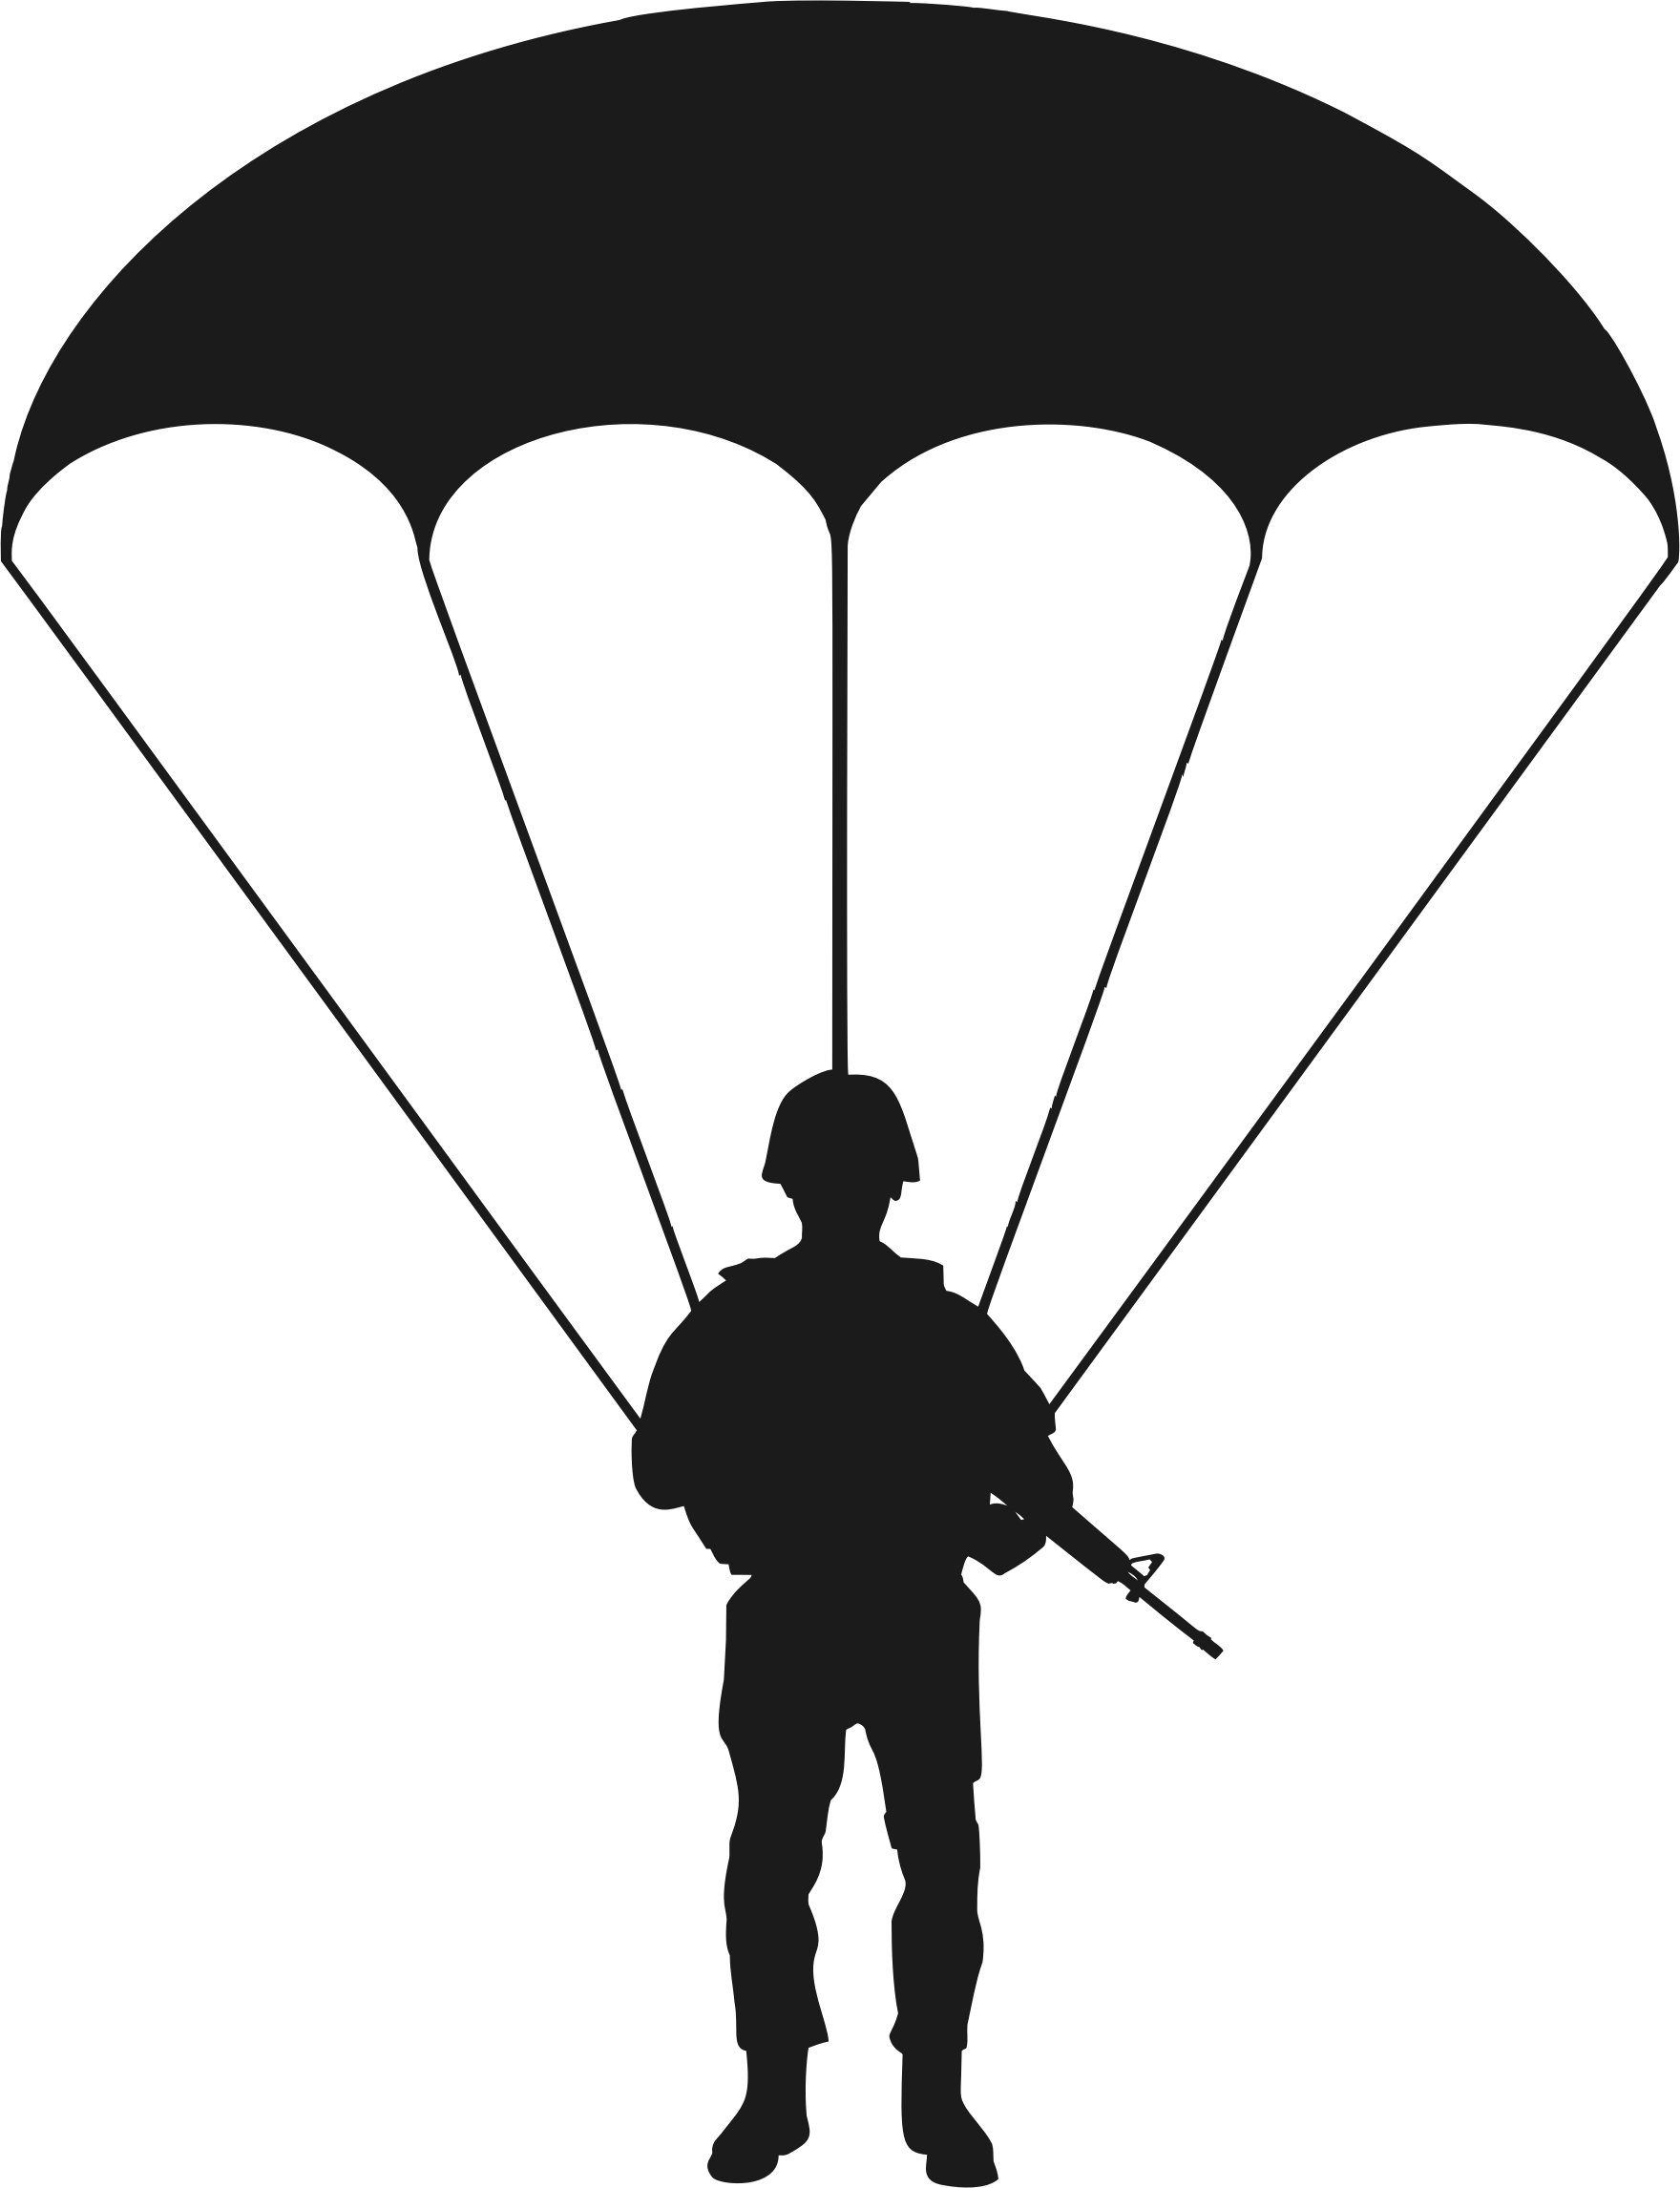 clipart paratrooper silhouette binoculars clip art free binoculars clip art free images